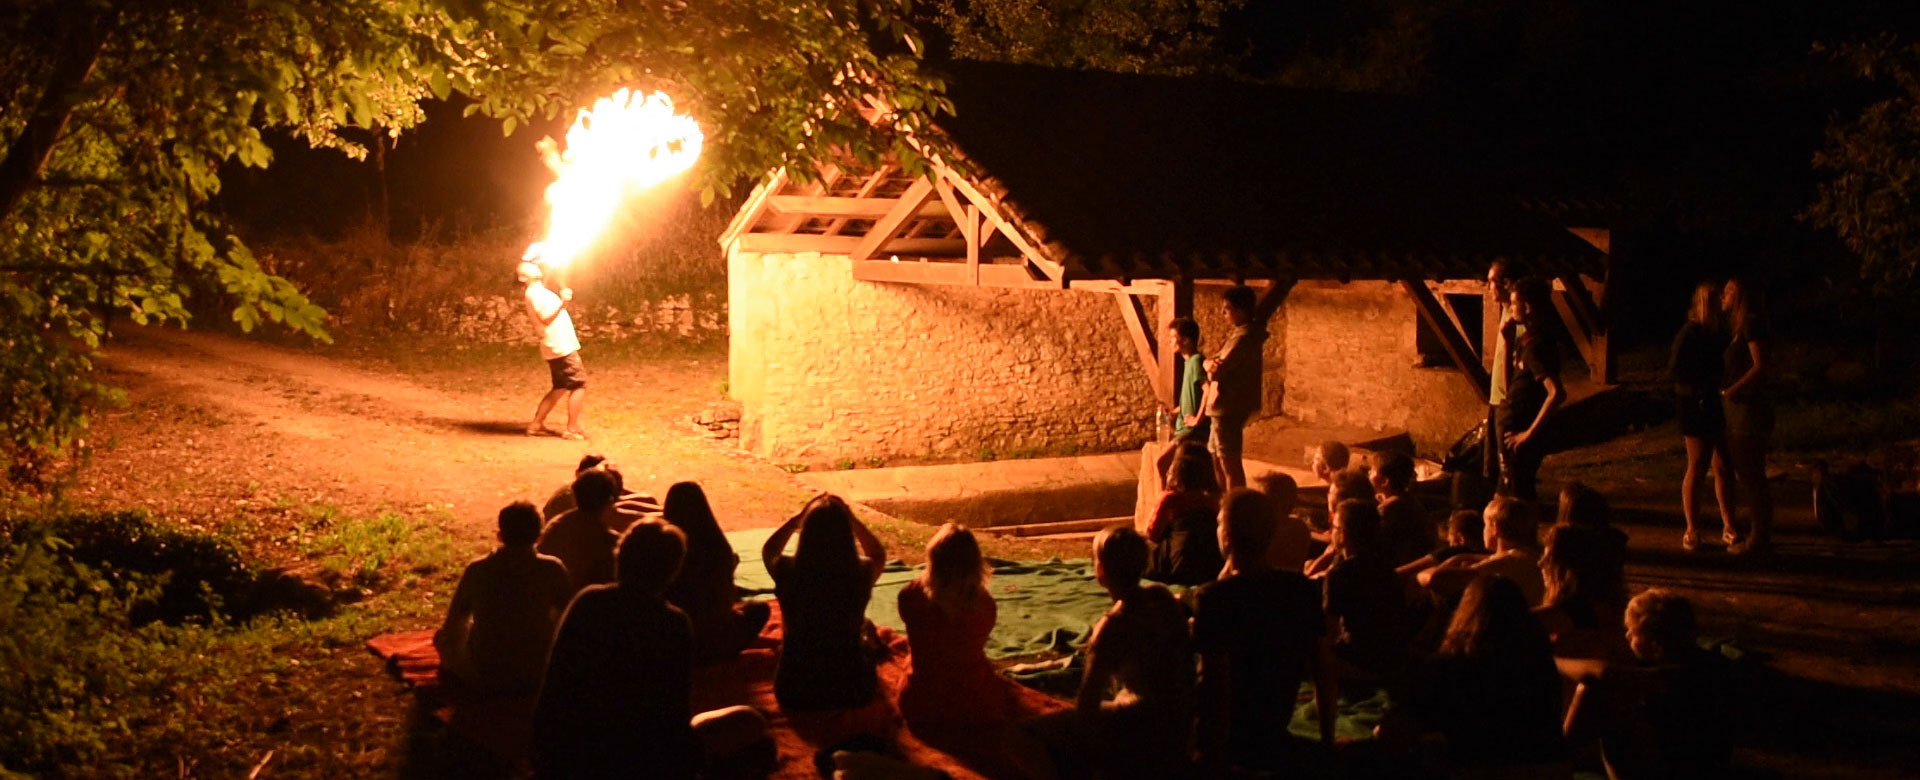 Show for teenagers at camping l'Évasion located in the Lot